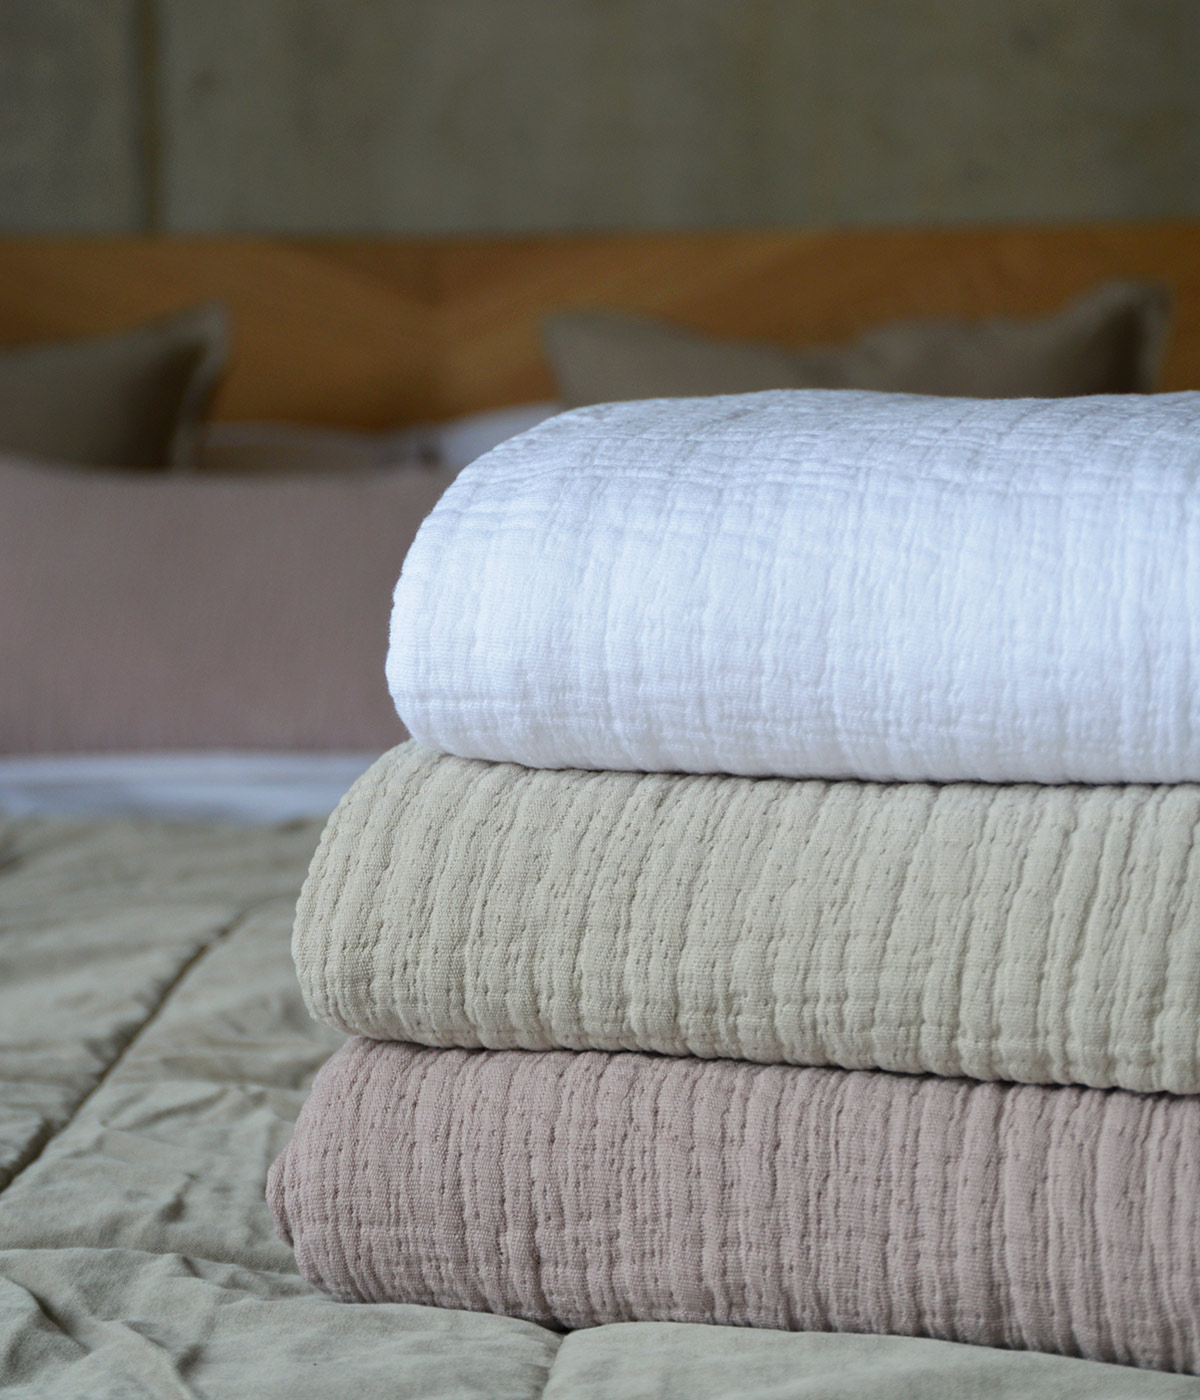 pure cotton crinkled effect throws up close and in white and stone